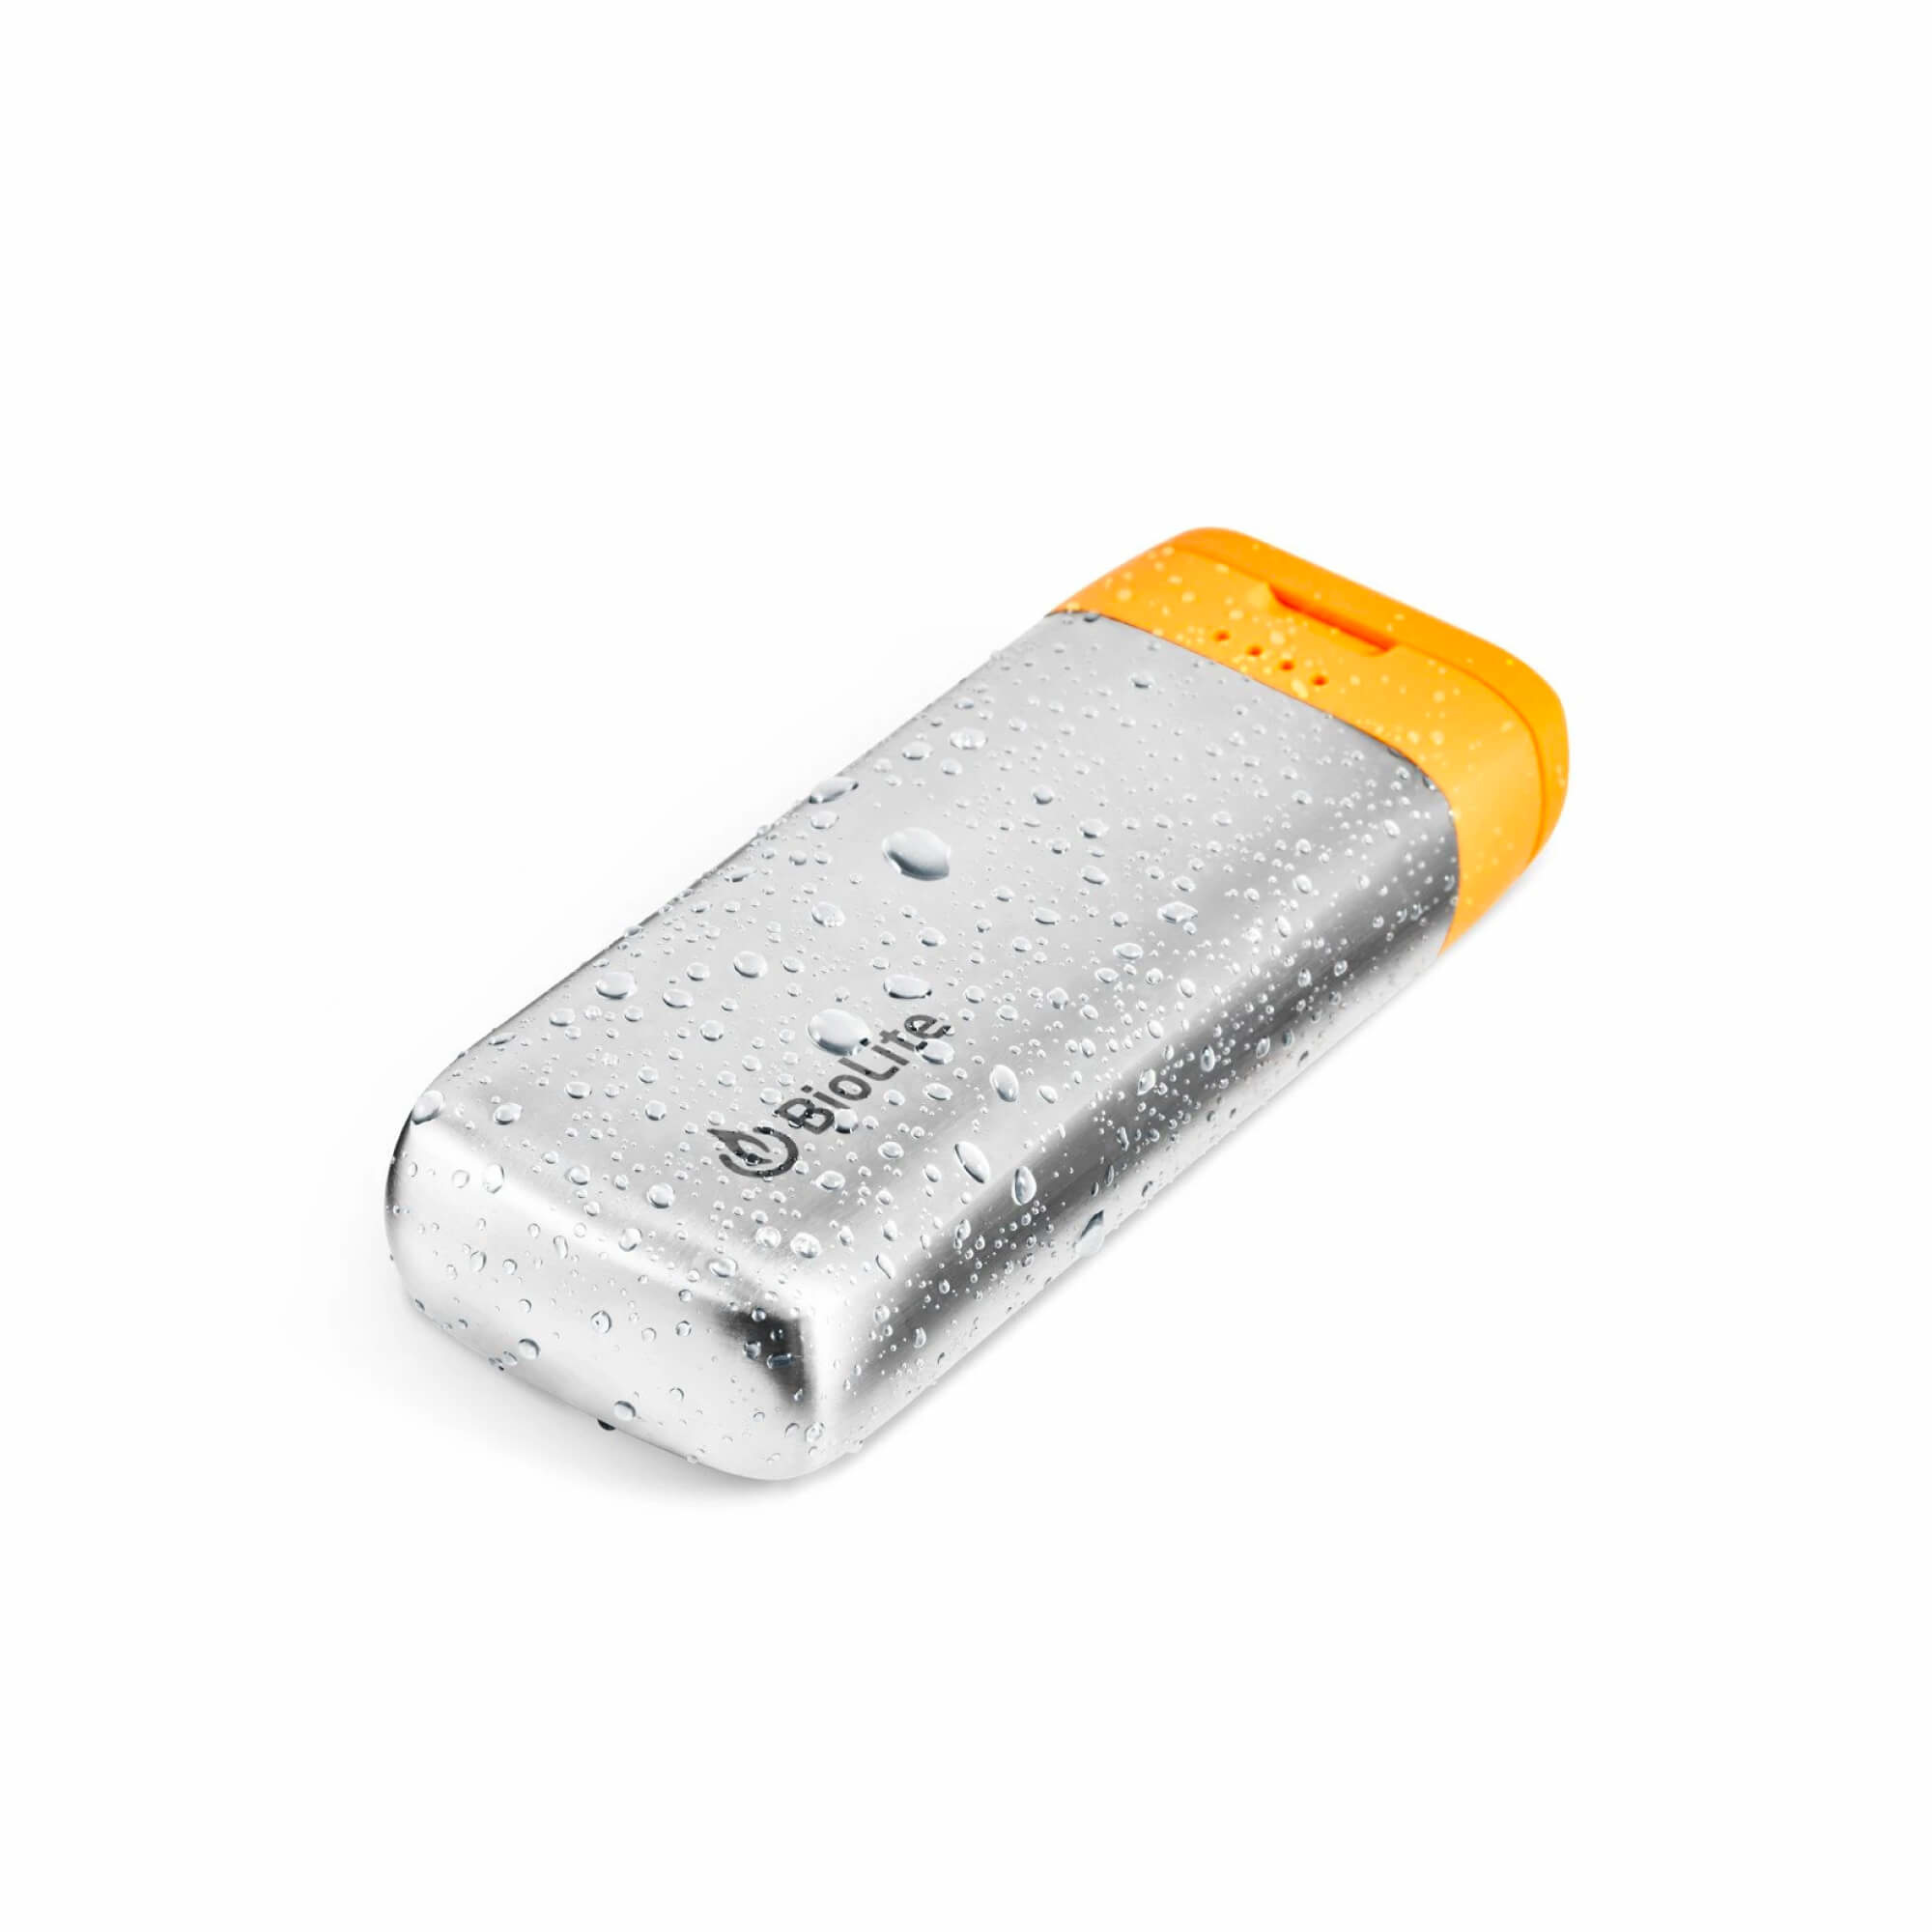 BioLite Charge USB Power Pack-6